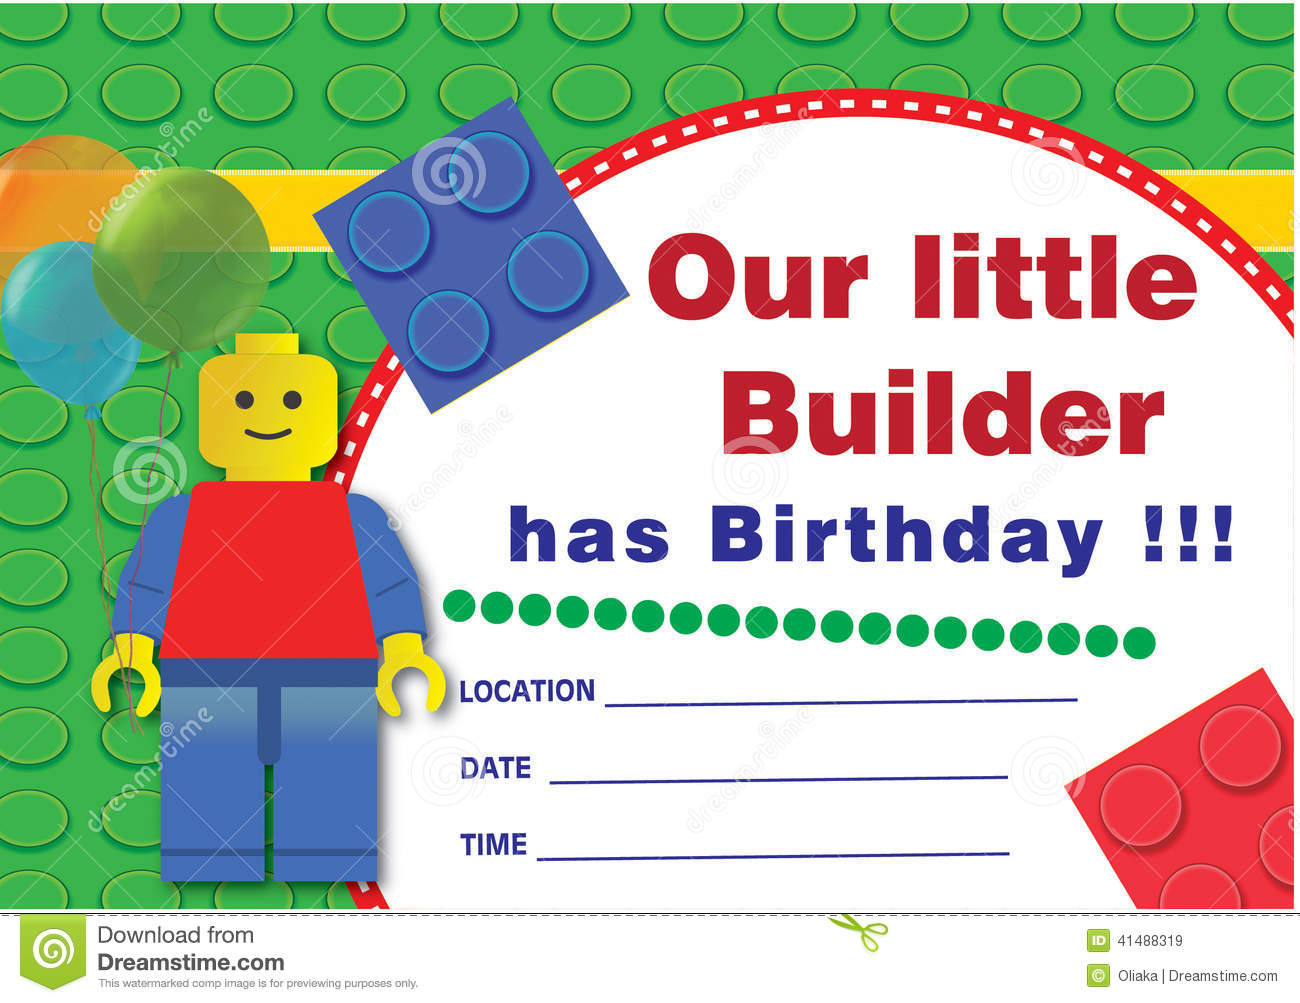 Invitation Lego. Latest Lego Birthday Lego Invitation Lego Birthday ...